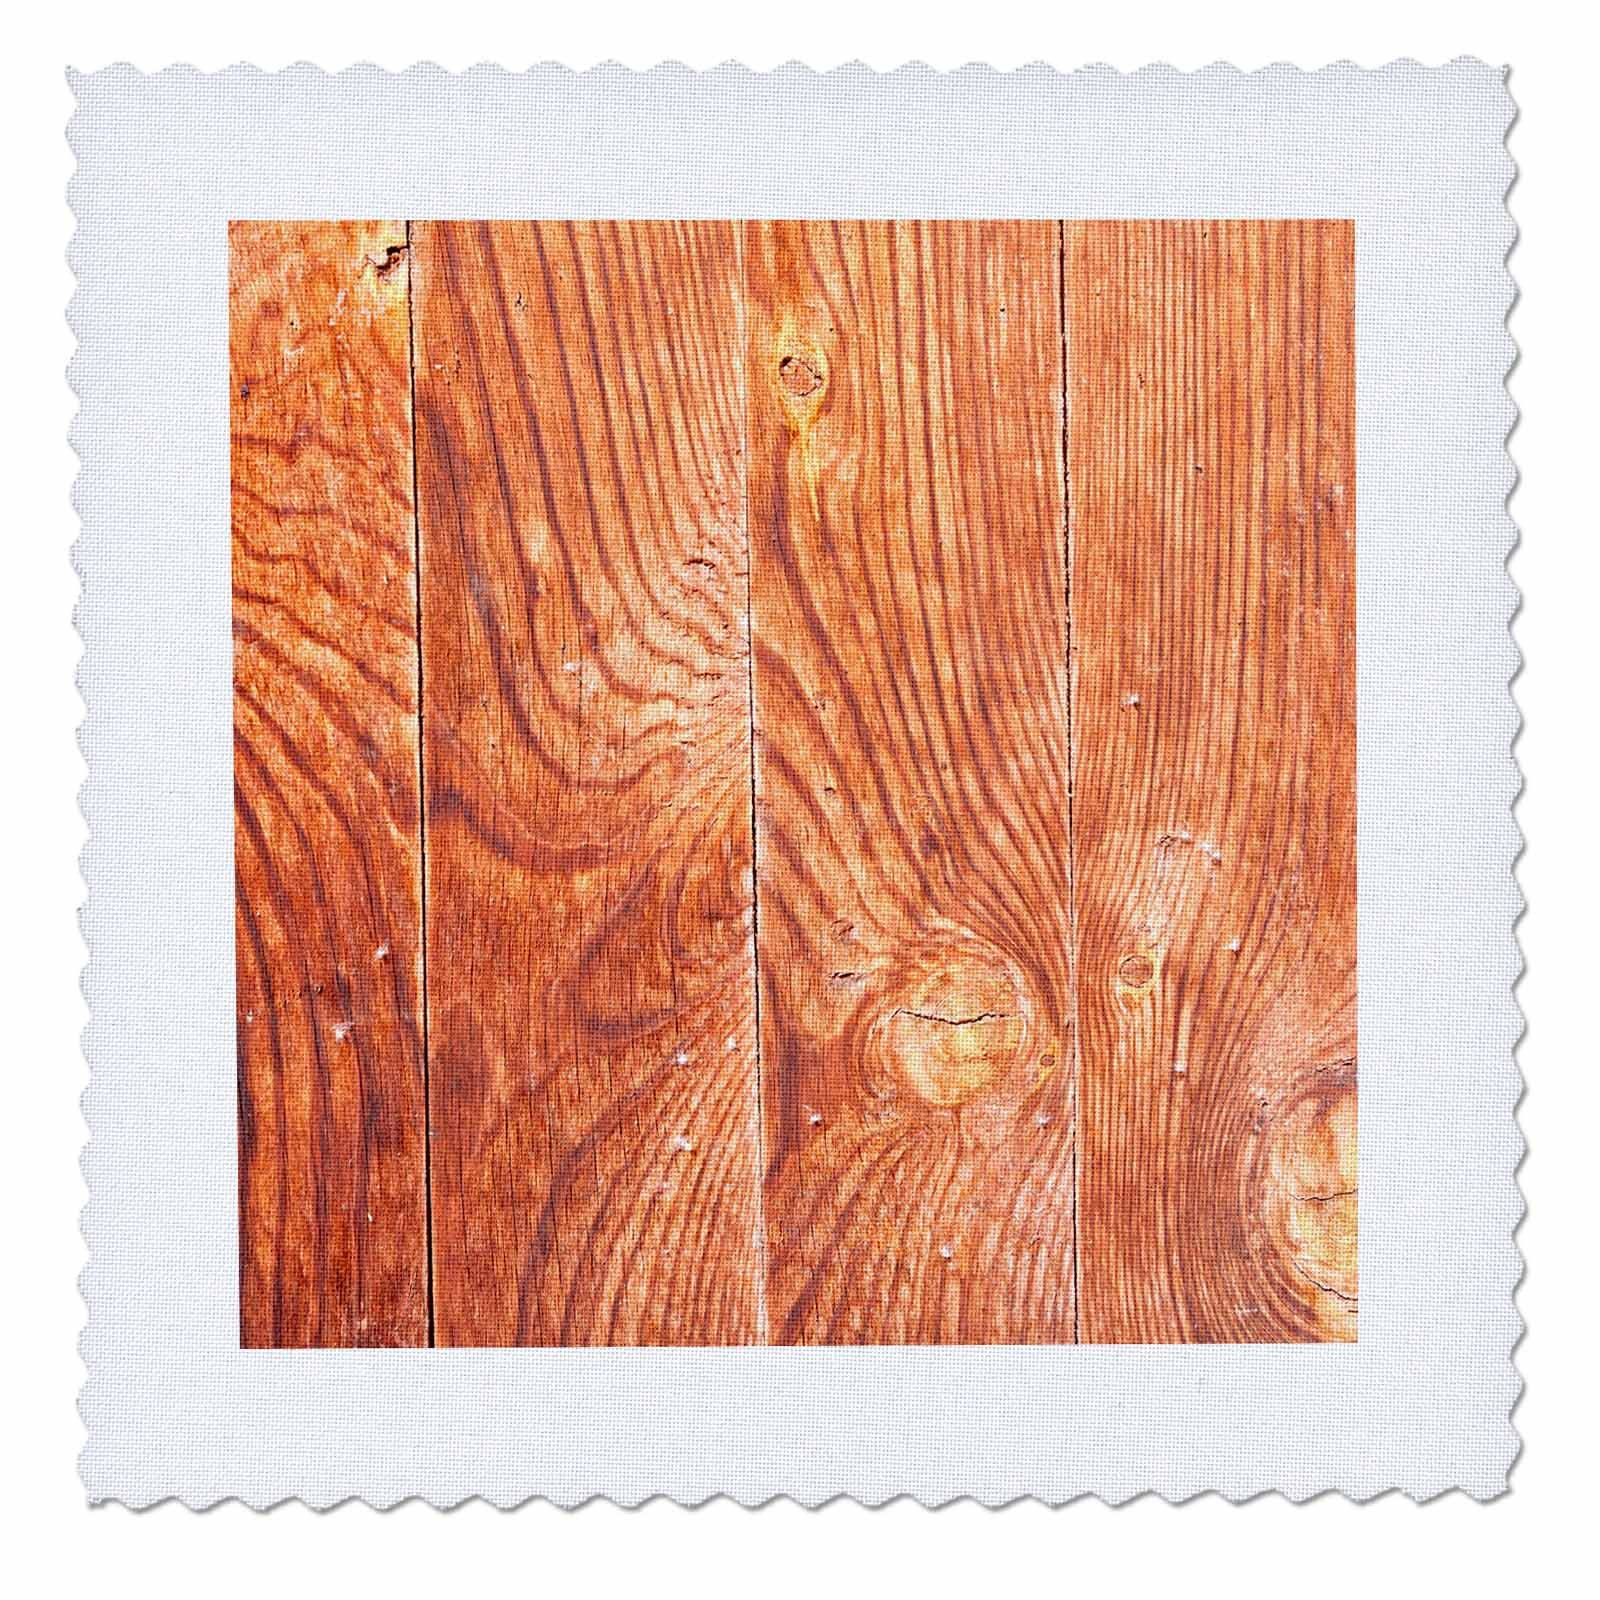 3dRose Alexis Photography - Texture Wood - Old weathered wooden planks of brown color - 16x16 inch quilt square (qs_273699_6) by 3dRose (Image #1)